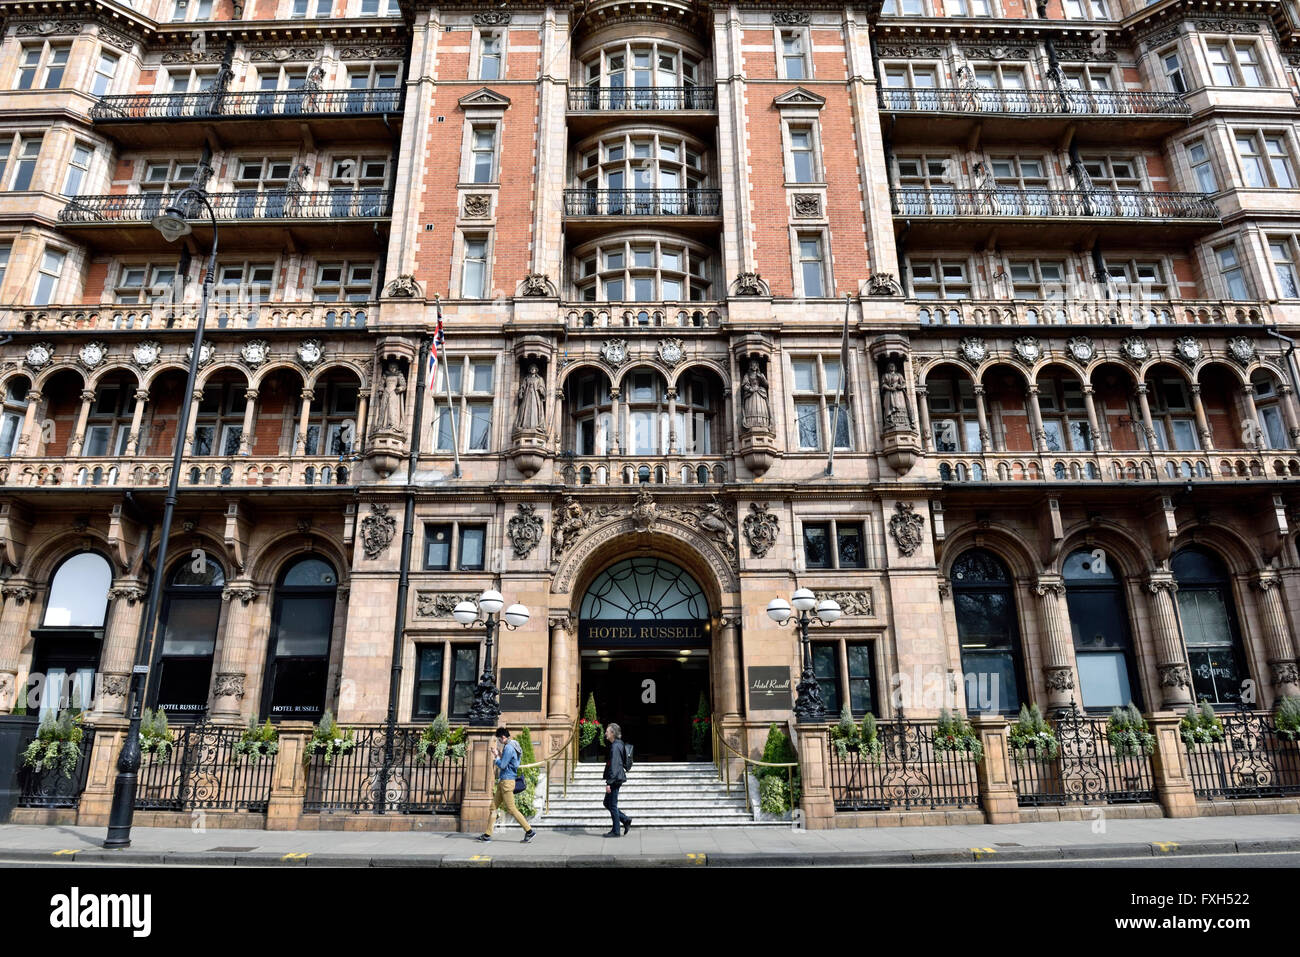 Hotel Russell, Russell Square, Bloomsbury London Borough of Camden England Britain UK Stock Photo